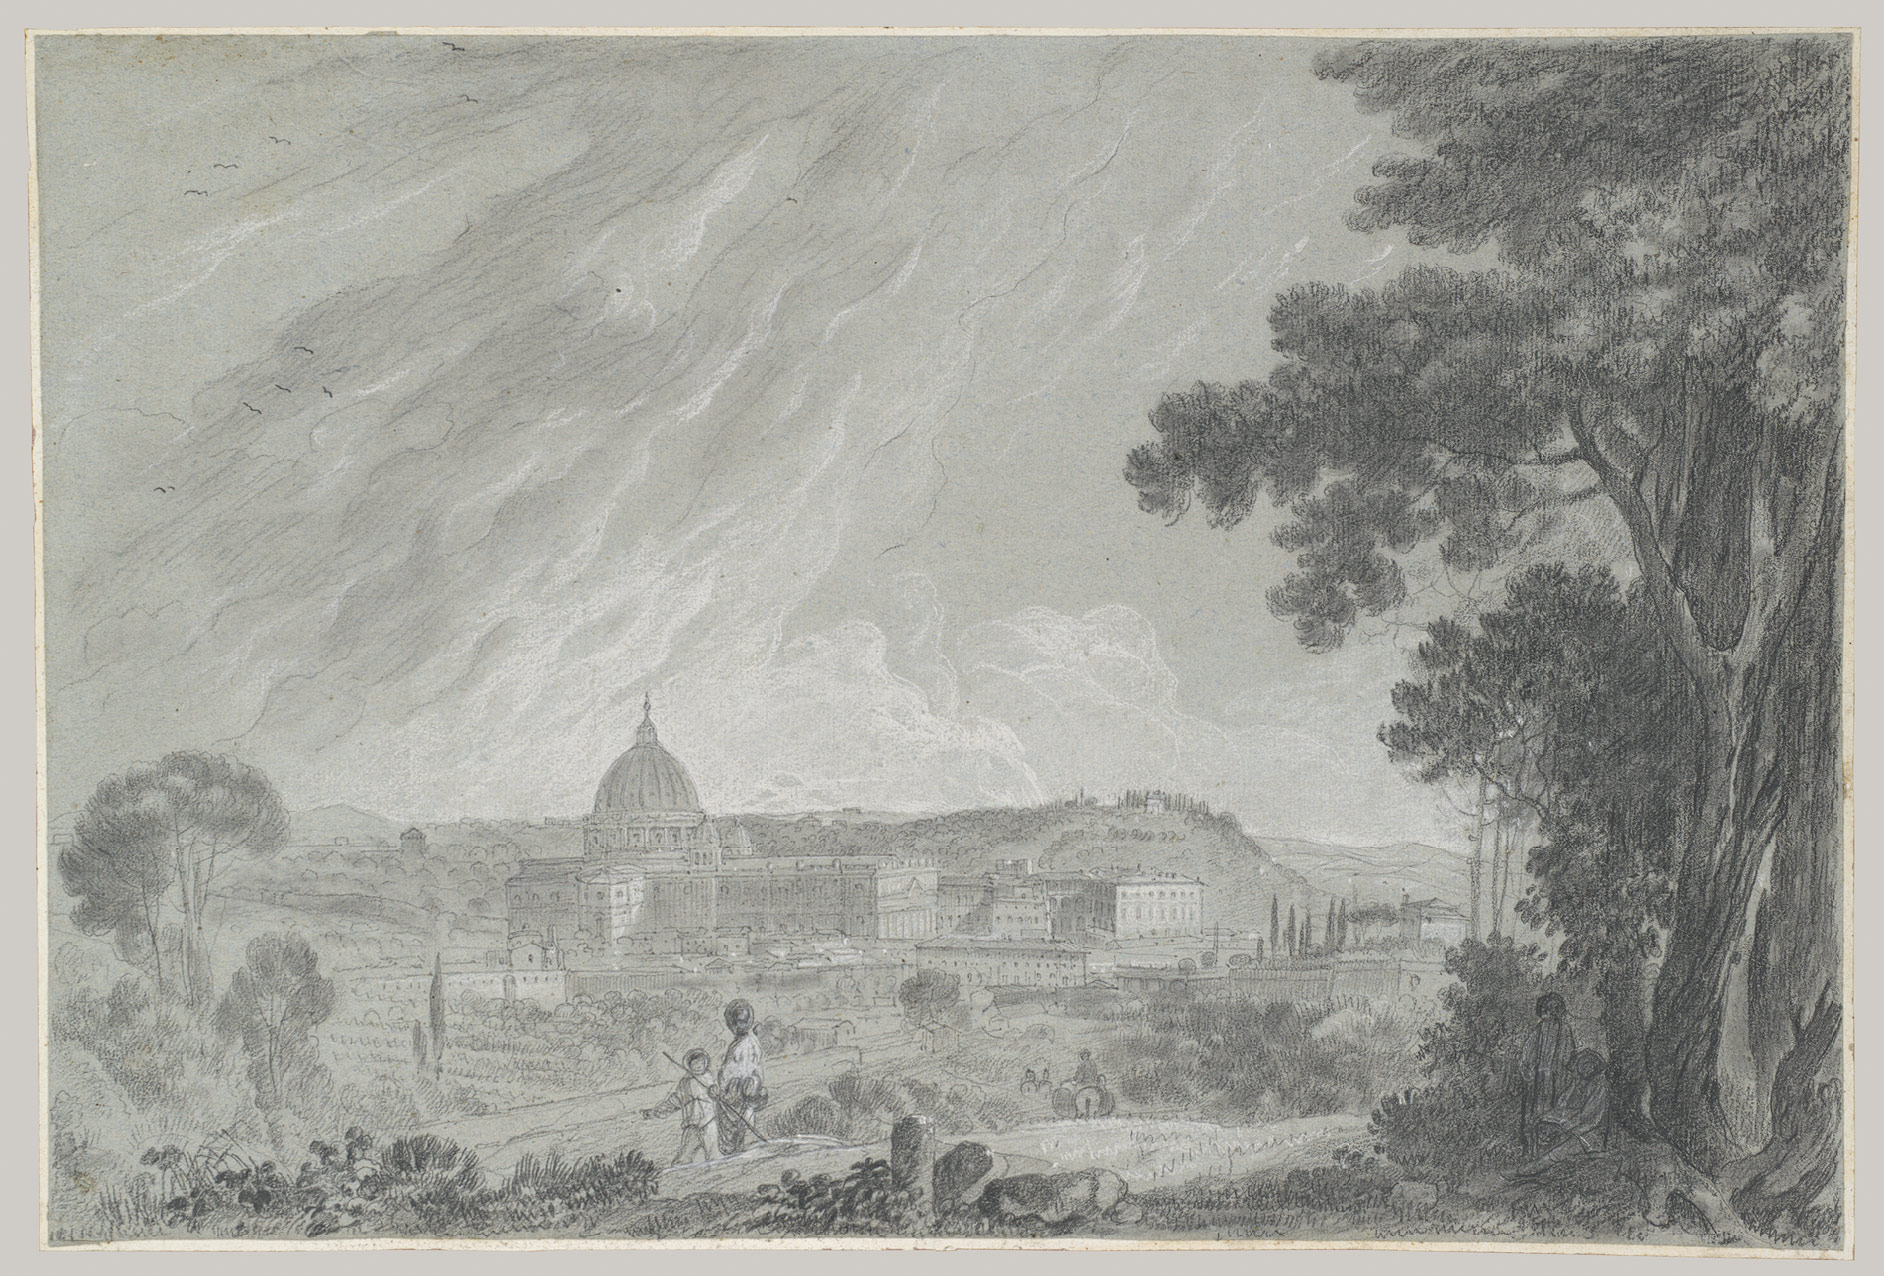 View of St. Peters and the Vatican from the Janiculum (Gianicolo)